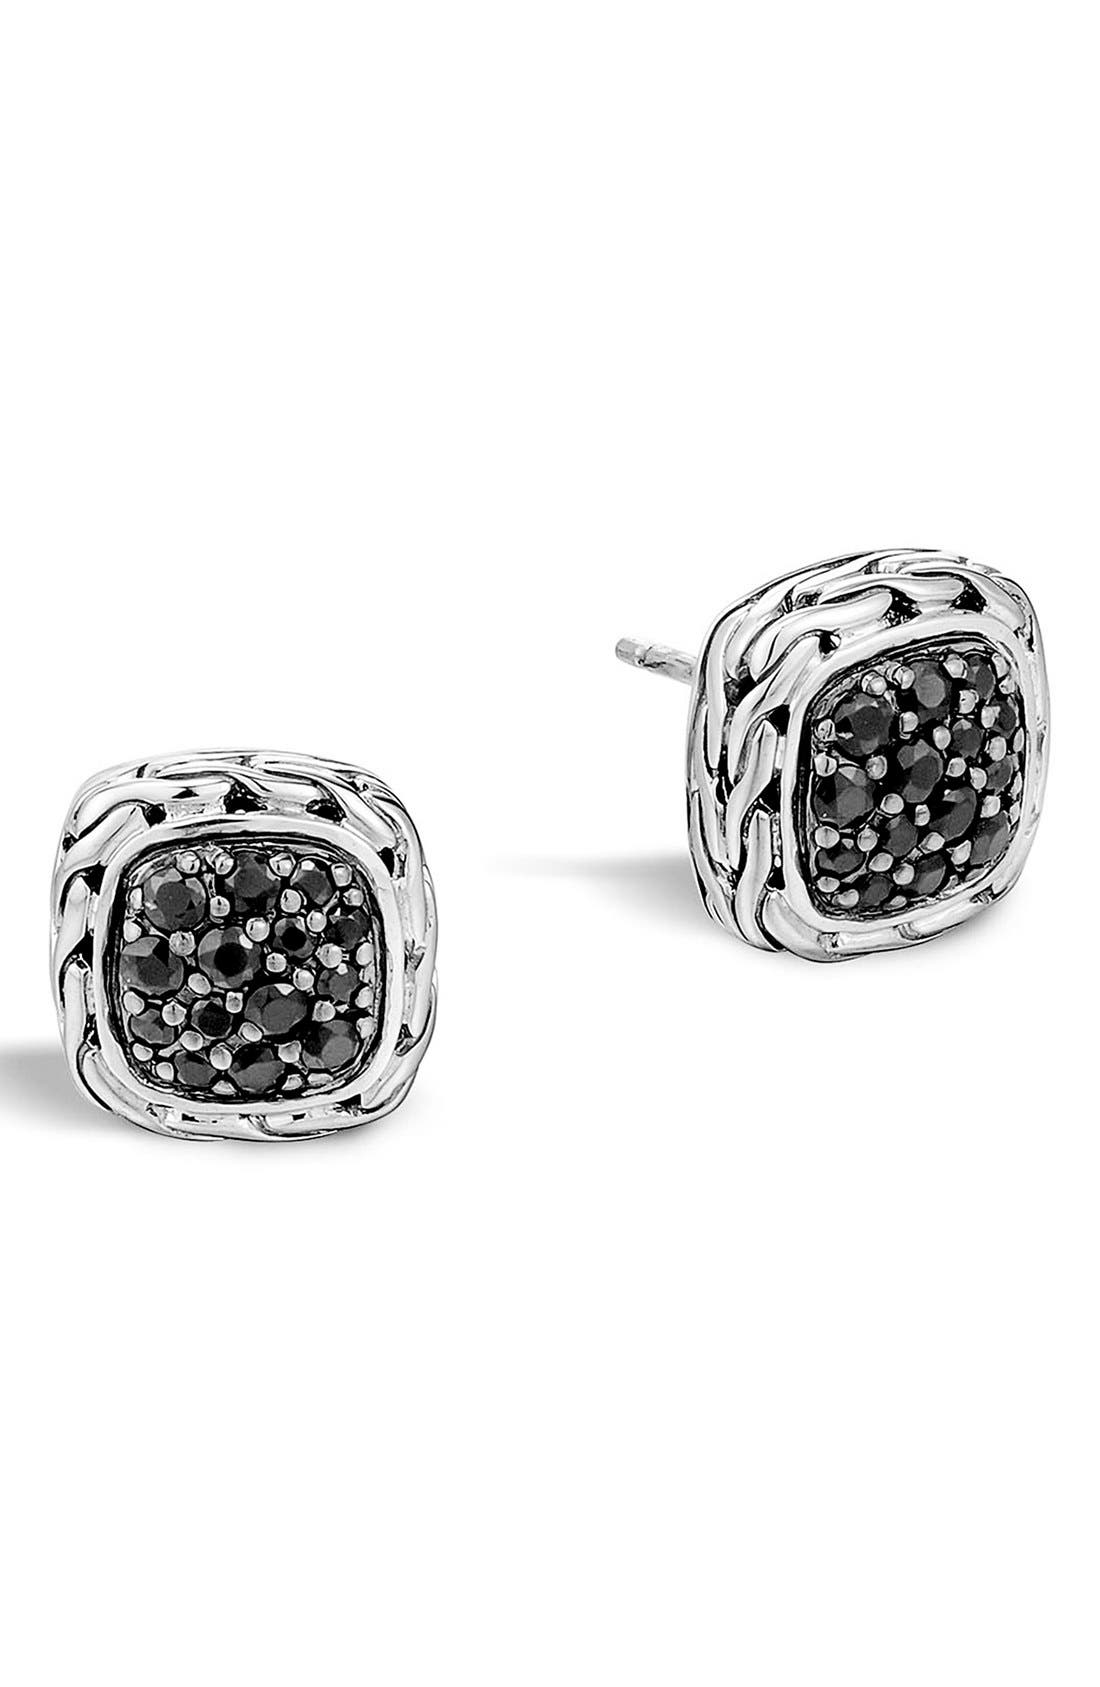 John Hardy 'Classic Chain' Small Square Stud Earrings